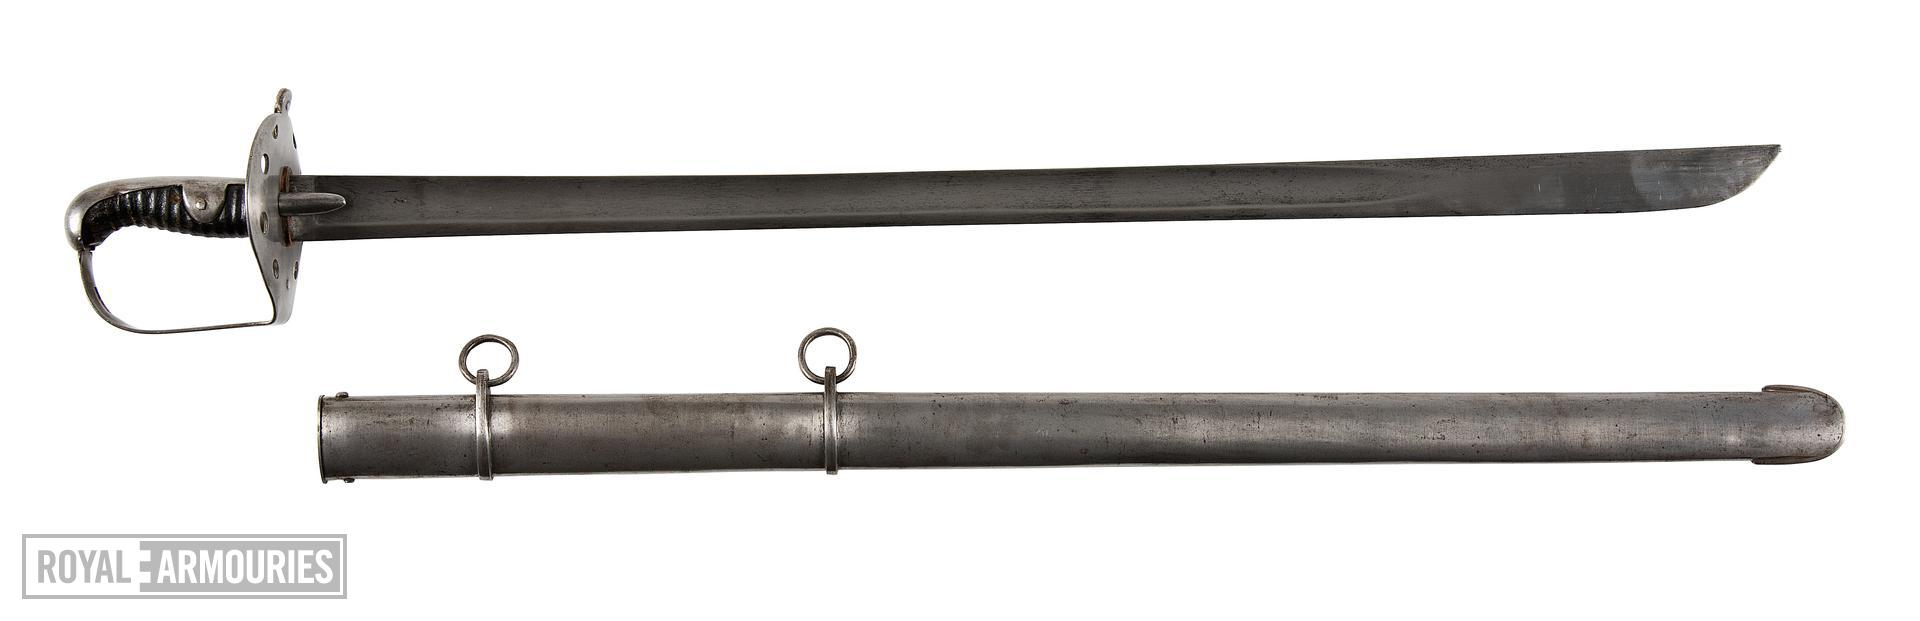 Heavy Cavalry Trooper's sword and scabbard, Pattern 1796, Britain, 1796-1821